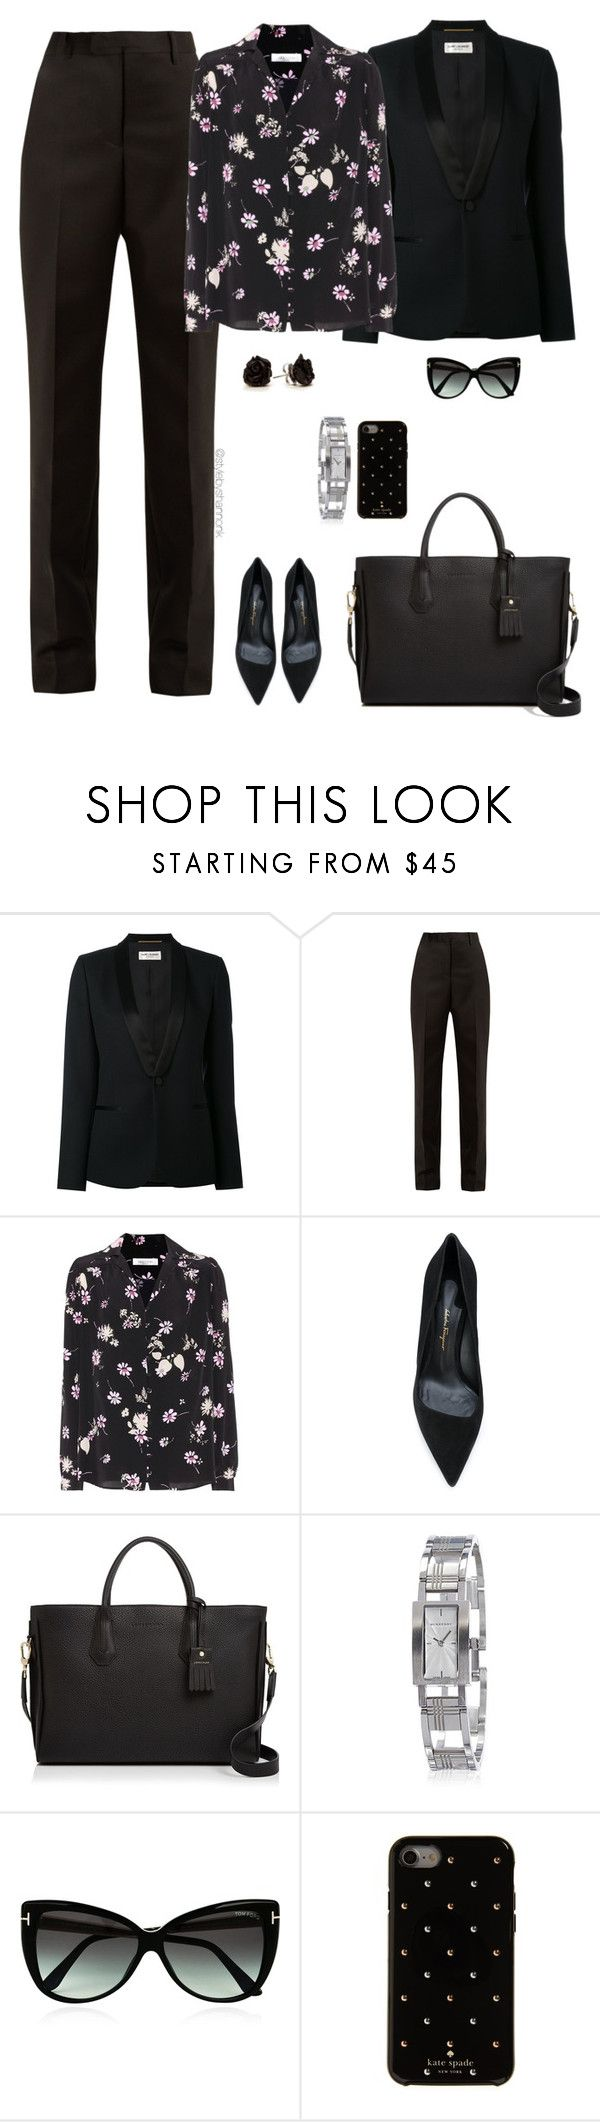 """work wear"" by stylebyshannonk ❤ liked on Polyvore featuring Yves Saint Laurent, Maison Margiela, Valentino, Salvatore Ferragamo, Longchamp, Burberry, Tom Ford and Kate Spade"